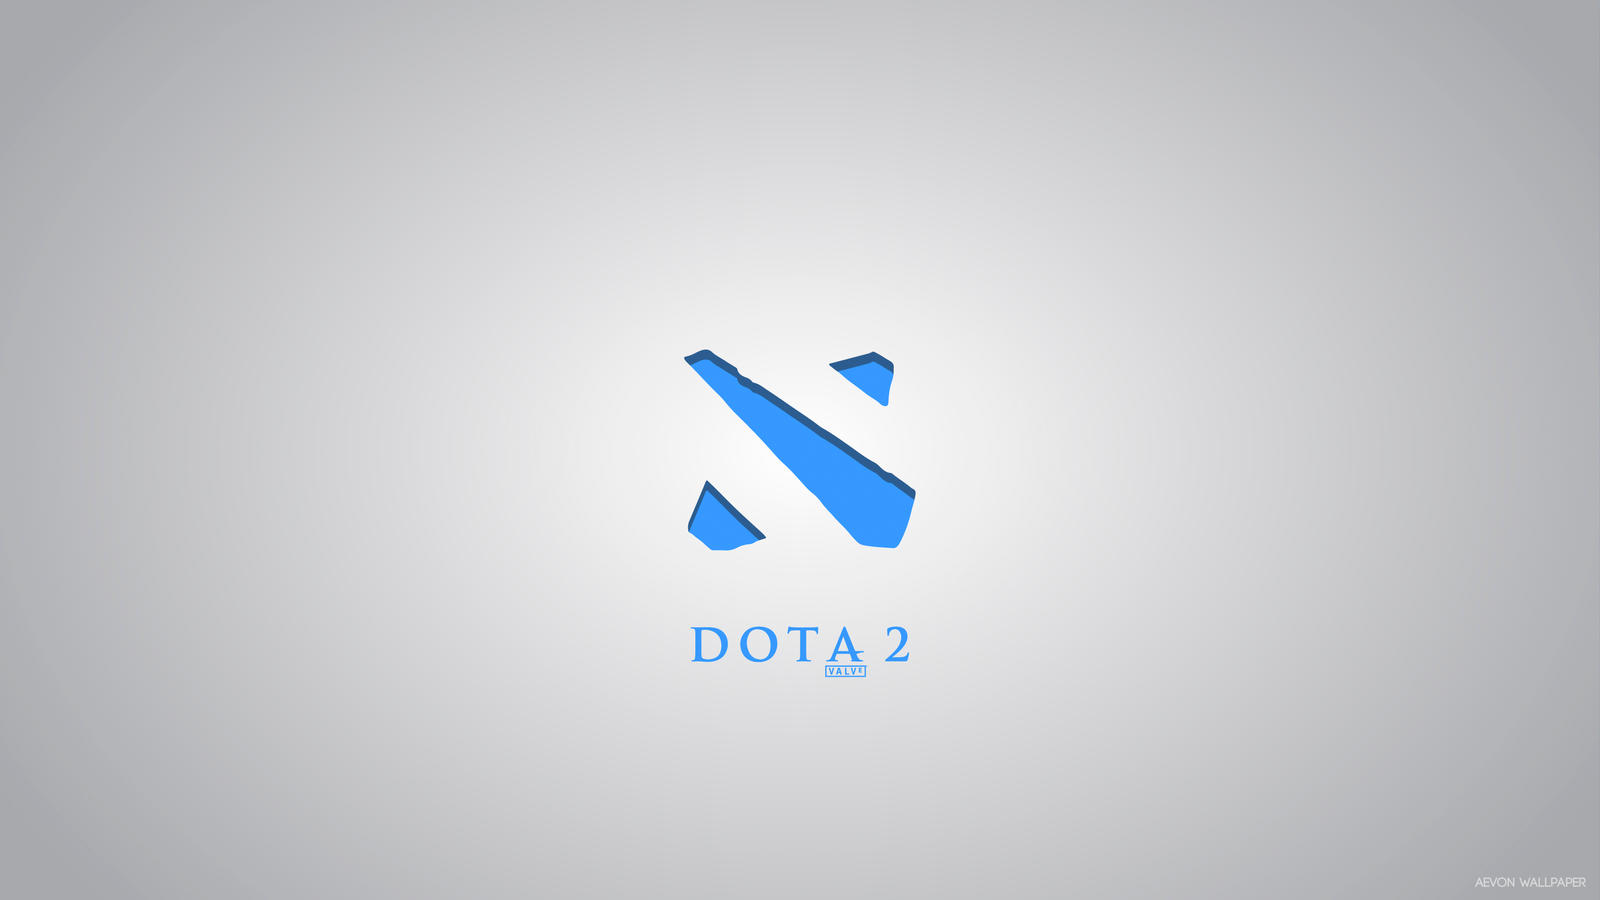 Dota 2 Ice Simple Wallpaper by aevonboy on DeviantArt